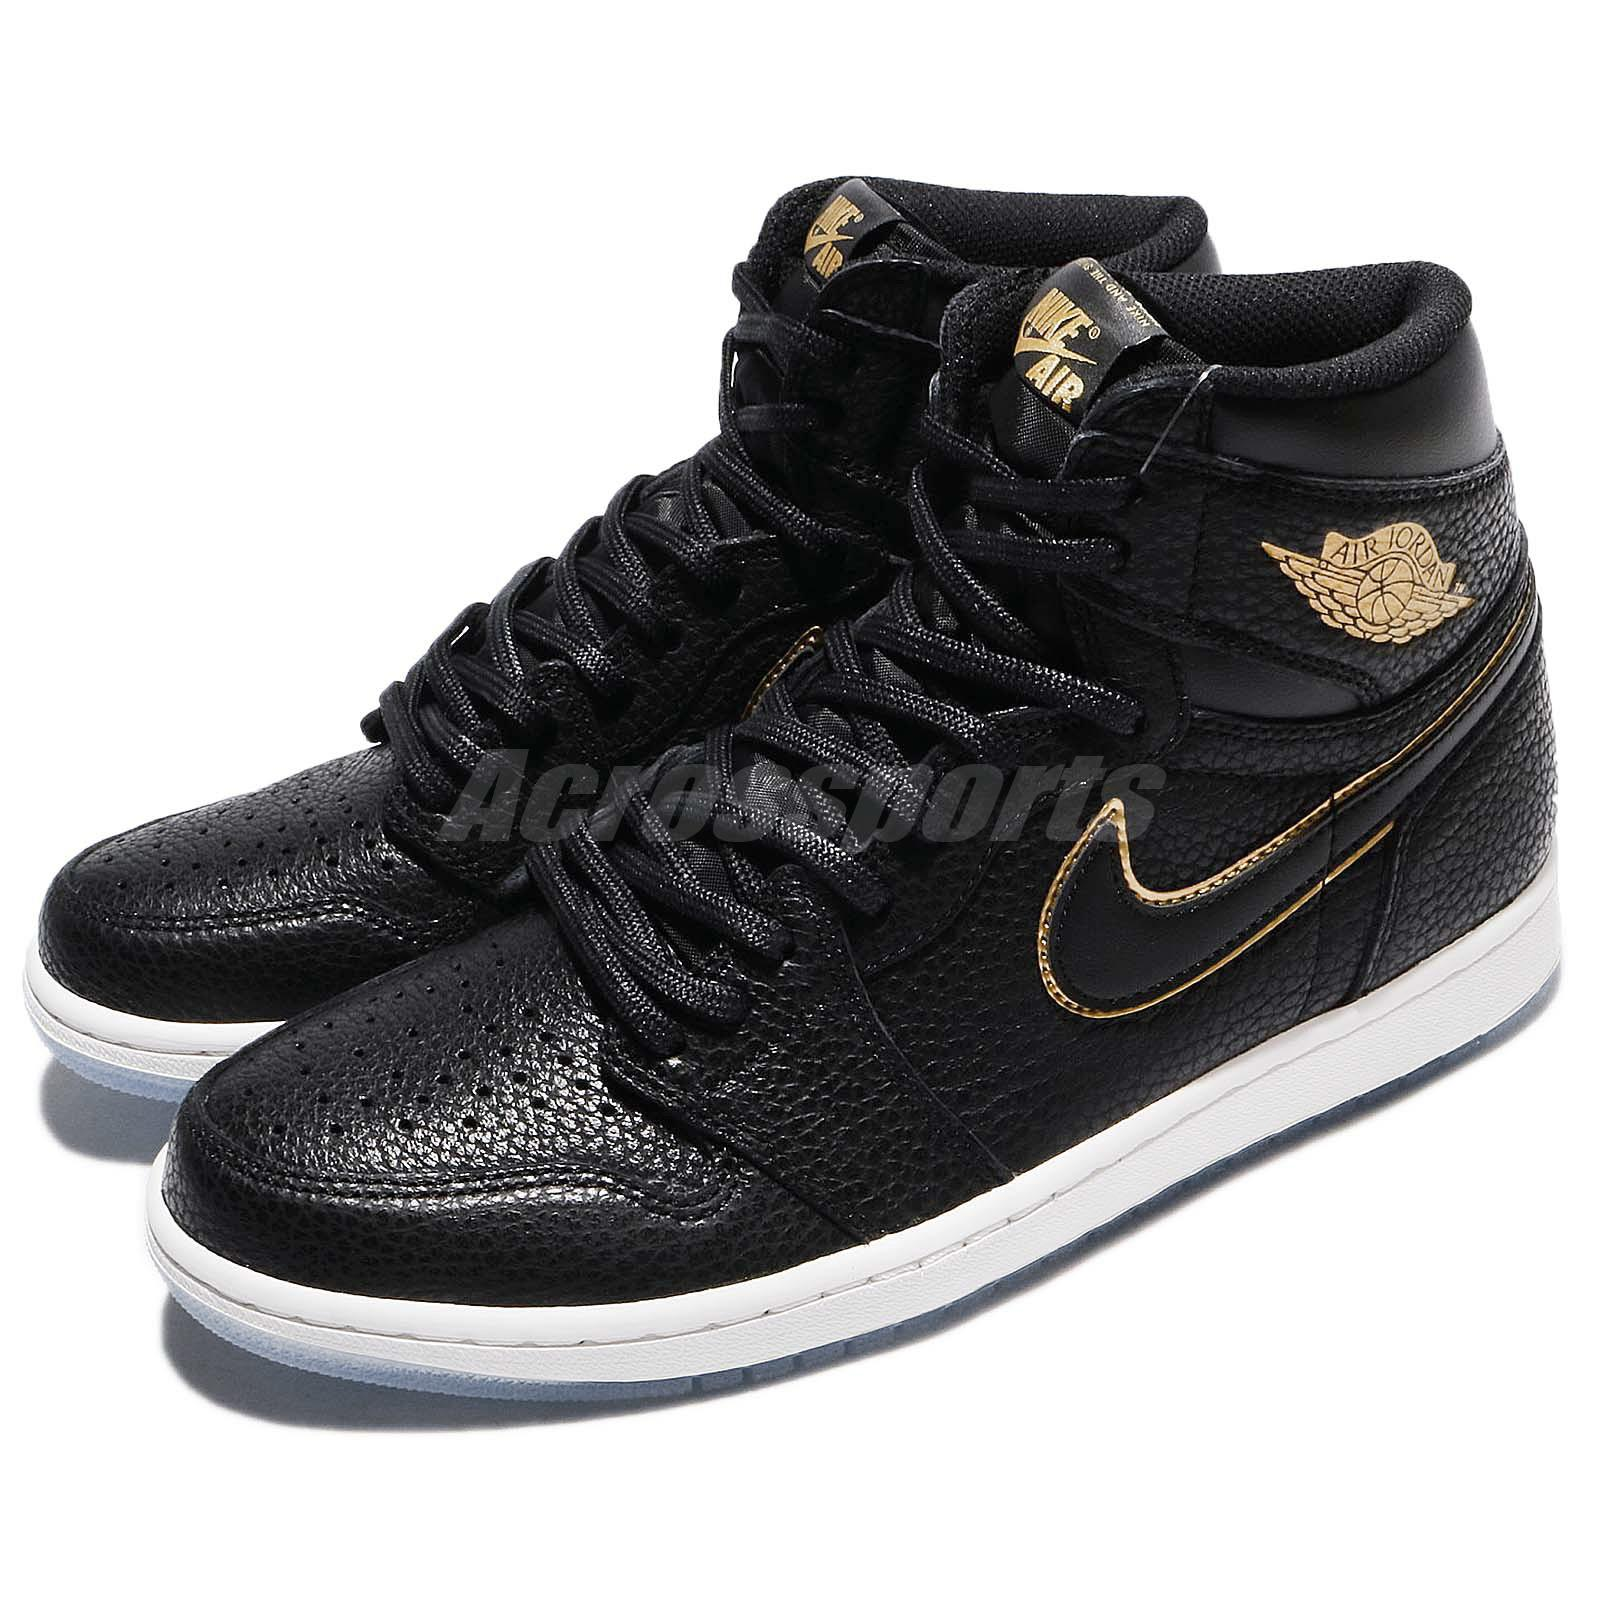 new concept e64dc 754cd Details about Nike Air Jordan 1 Retro High OG LA All Star City Of Flight  Black AJ1 555088-031